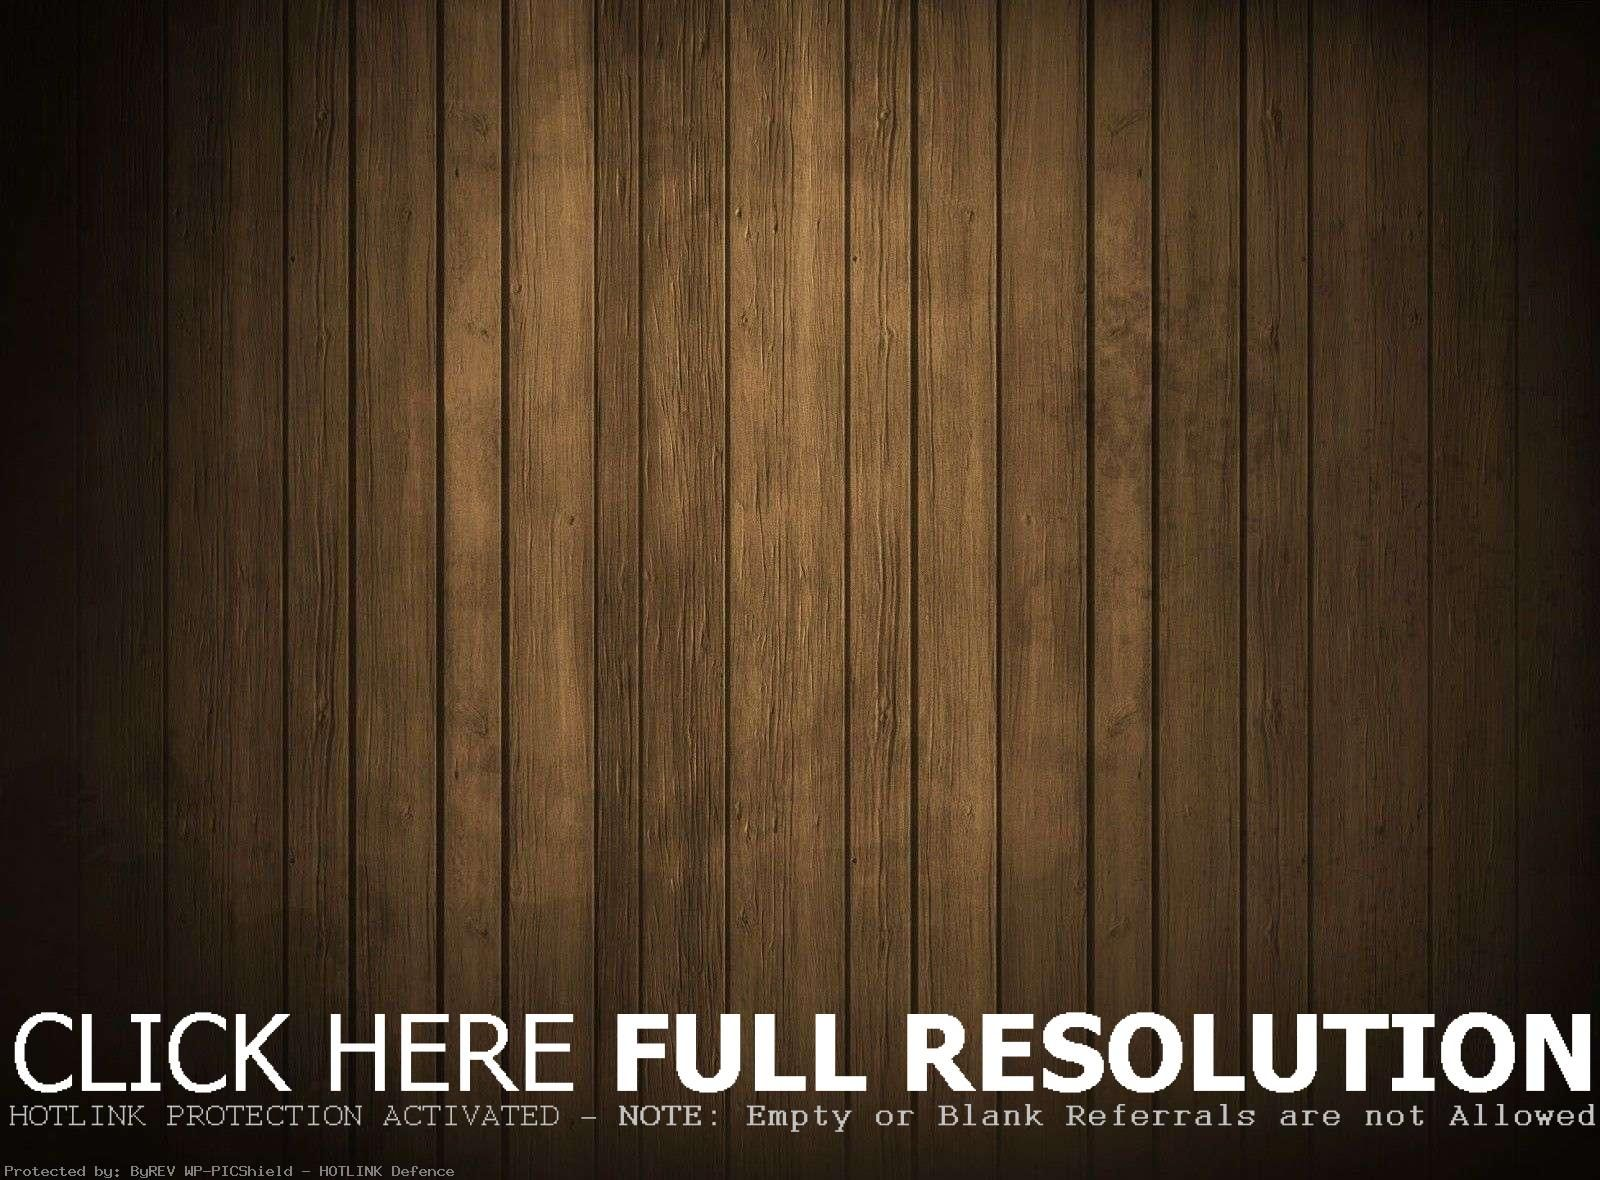 Beautiful Wallpaper Android Wood - 8533ca17ce1c8c97e58a483fdf8fdcea  Trends_351967      .jpg